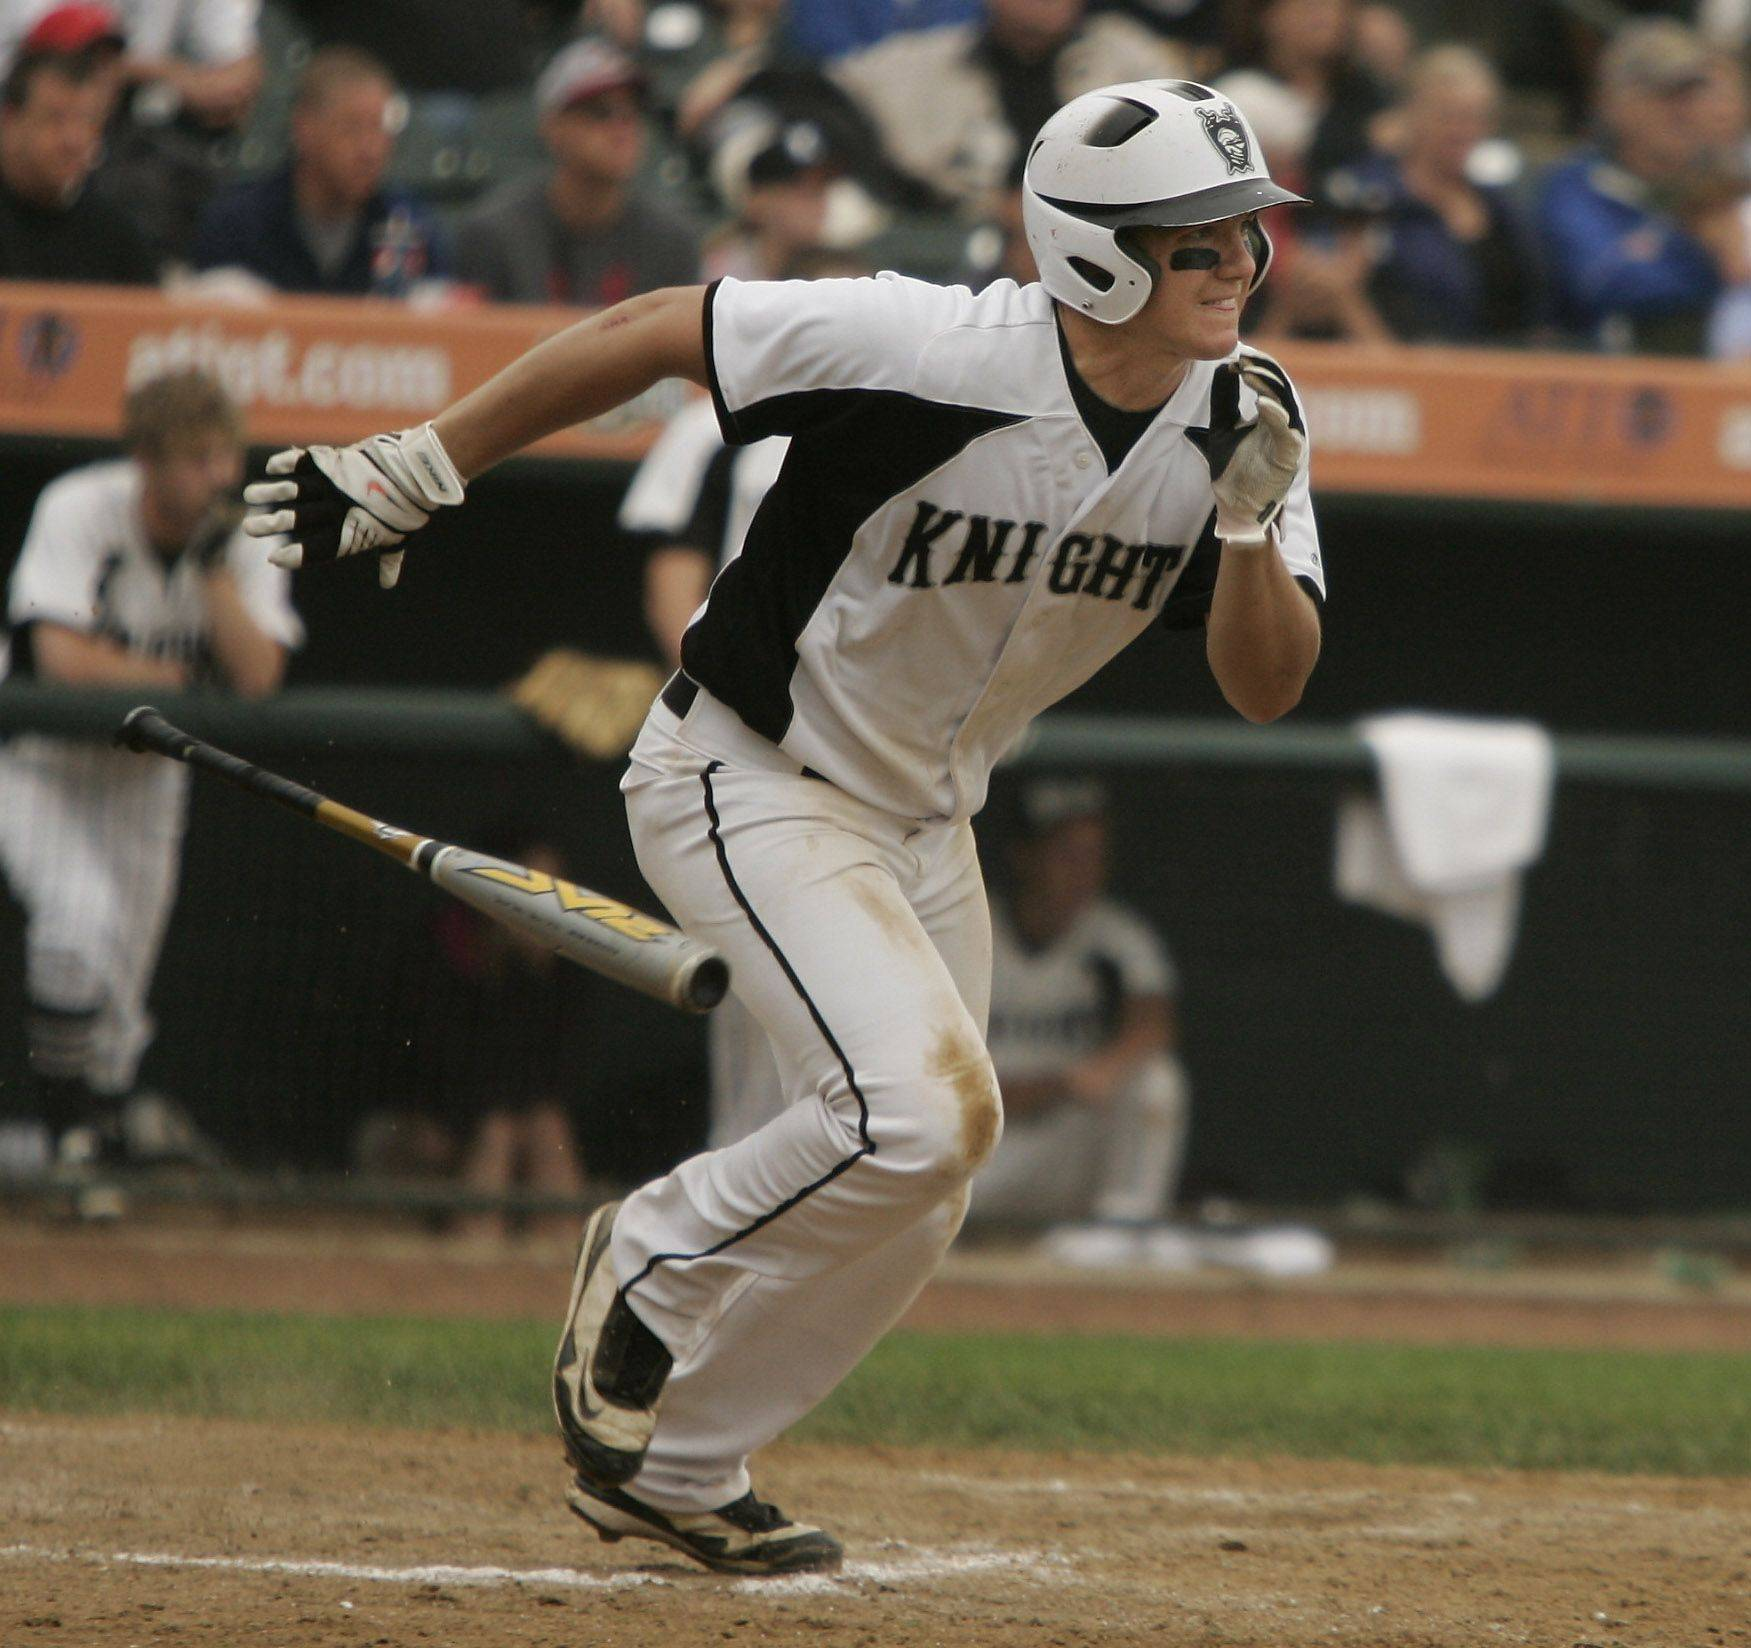 Kaneland batter Joe Camiliere gets three hits and three runs during the Kaneland vs. Oak Forest boys high school baseball game Saturday in the Class 3A state finals at Silver Cross Field in Joliet. Kaneland defeated Oak Forest 11-3 to win the state championship.